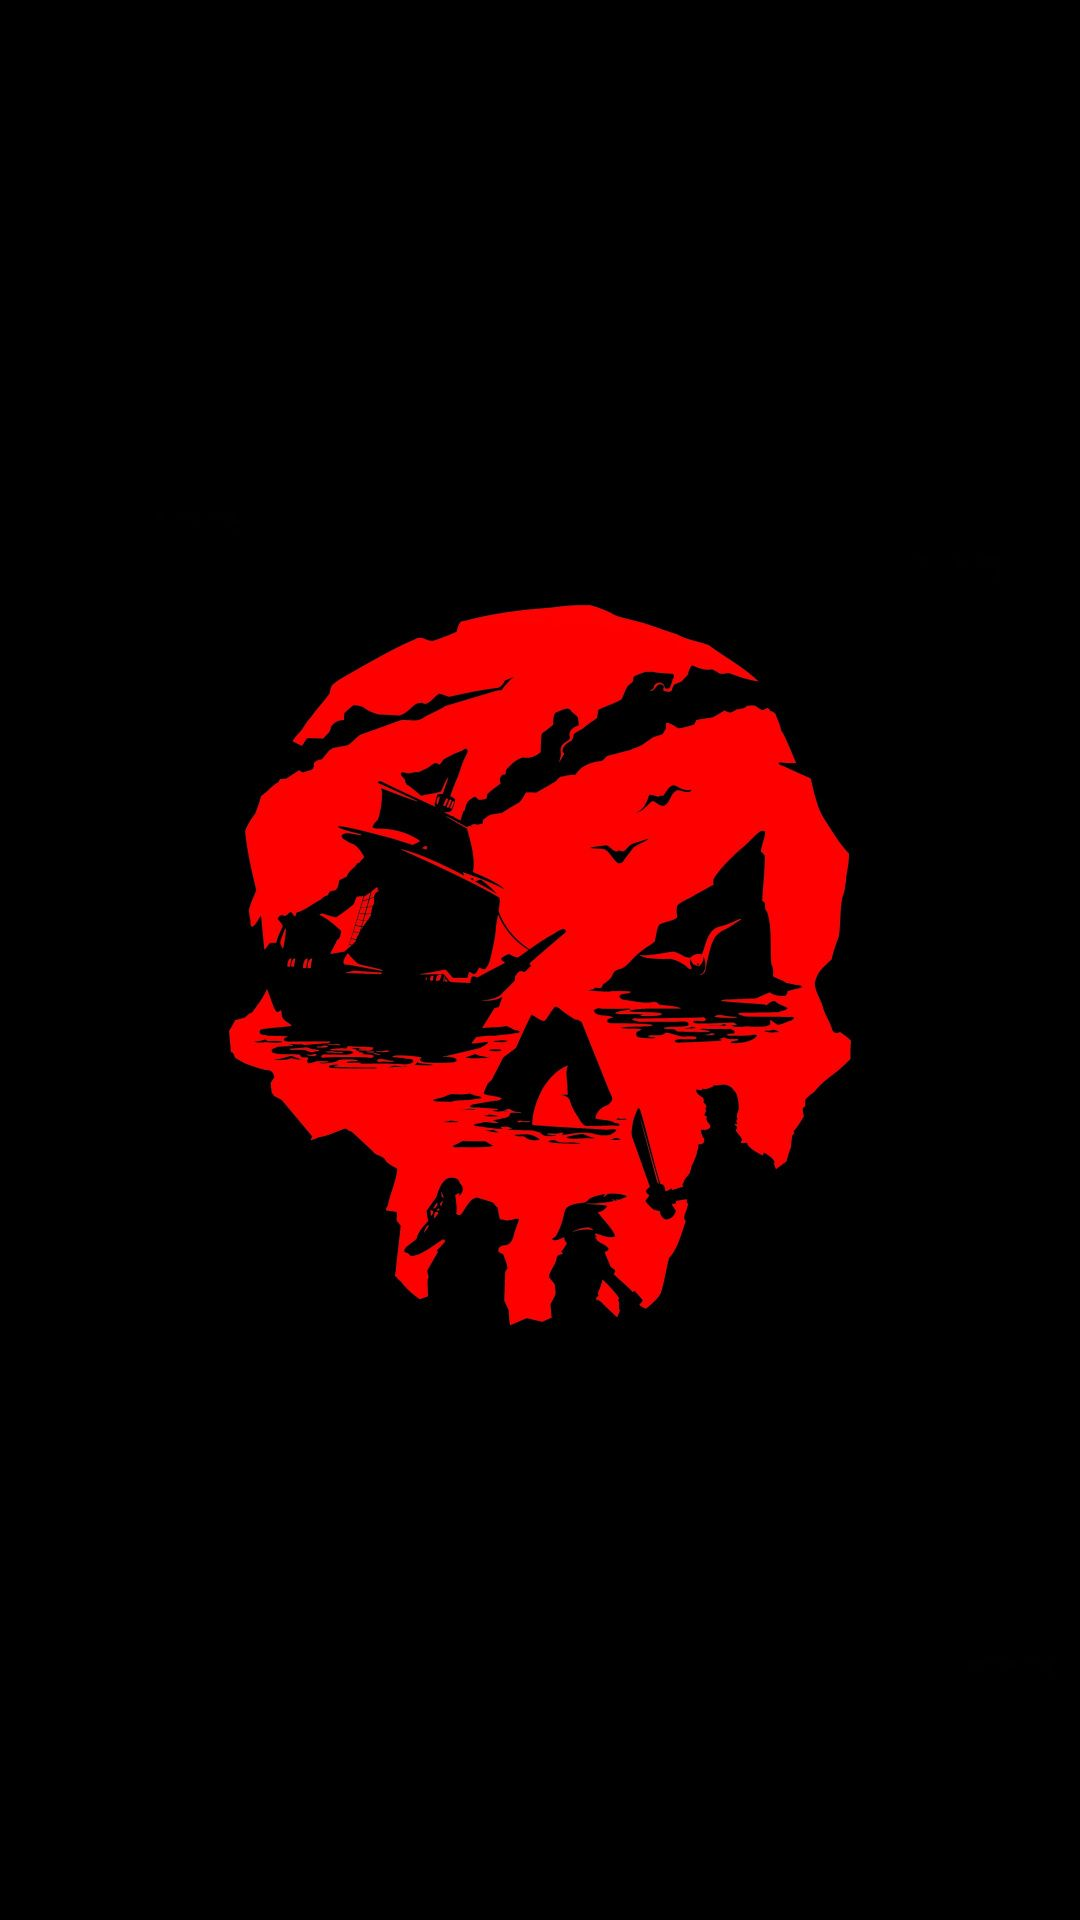 Sea of Thieves, Video game, red skull, art, 1080x1920 wallpaper